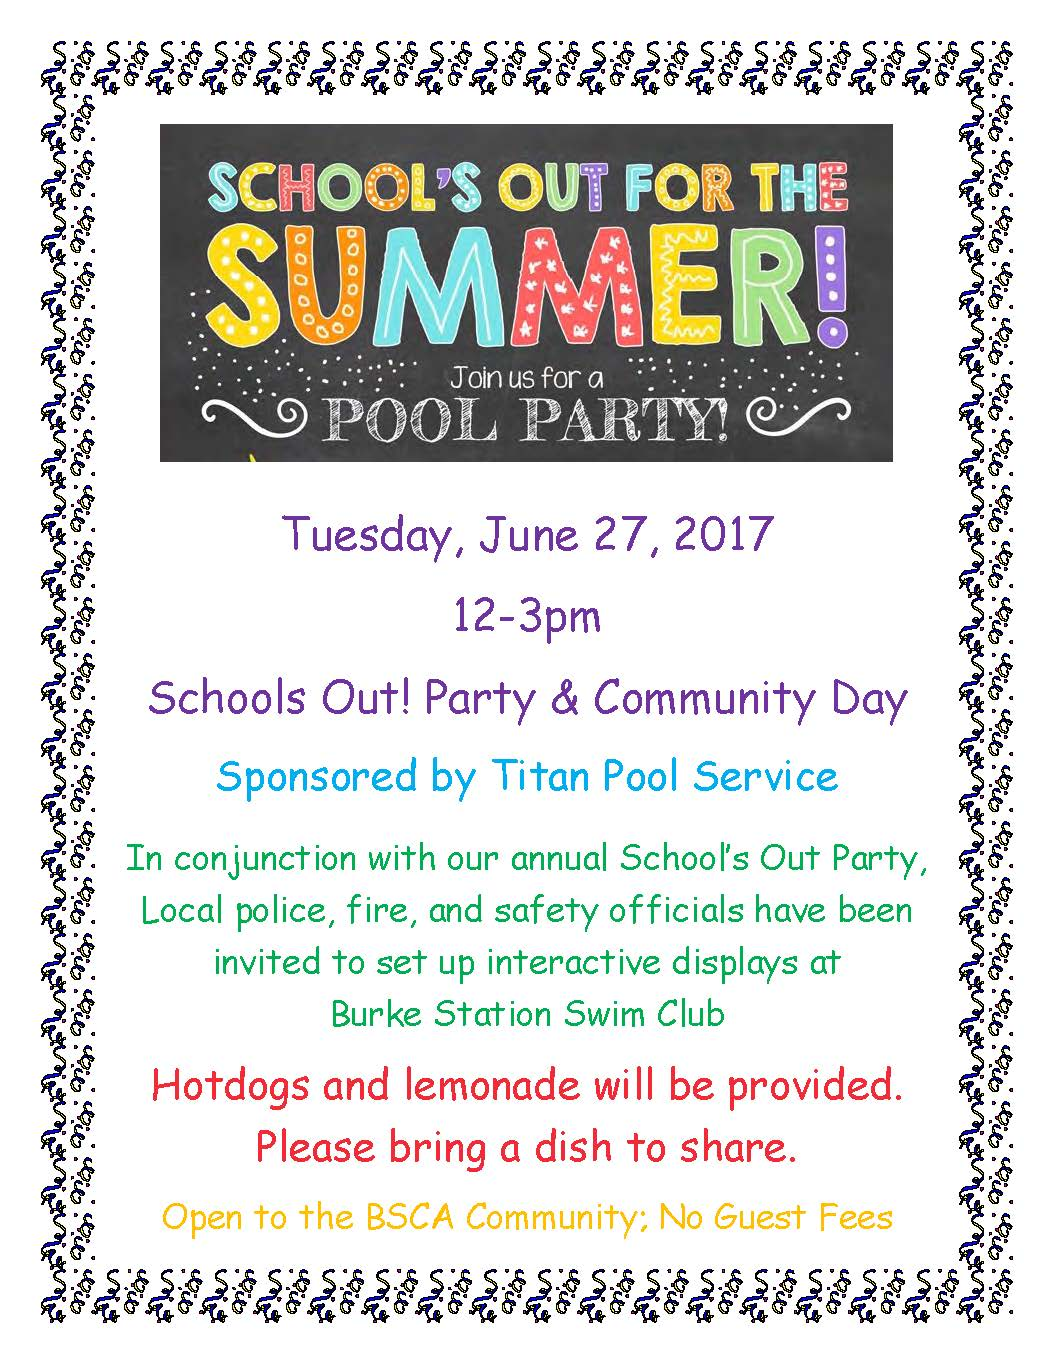 Schools Out 2017 Flyer